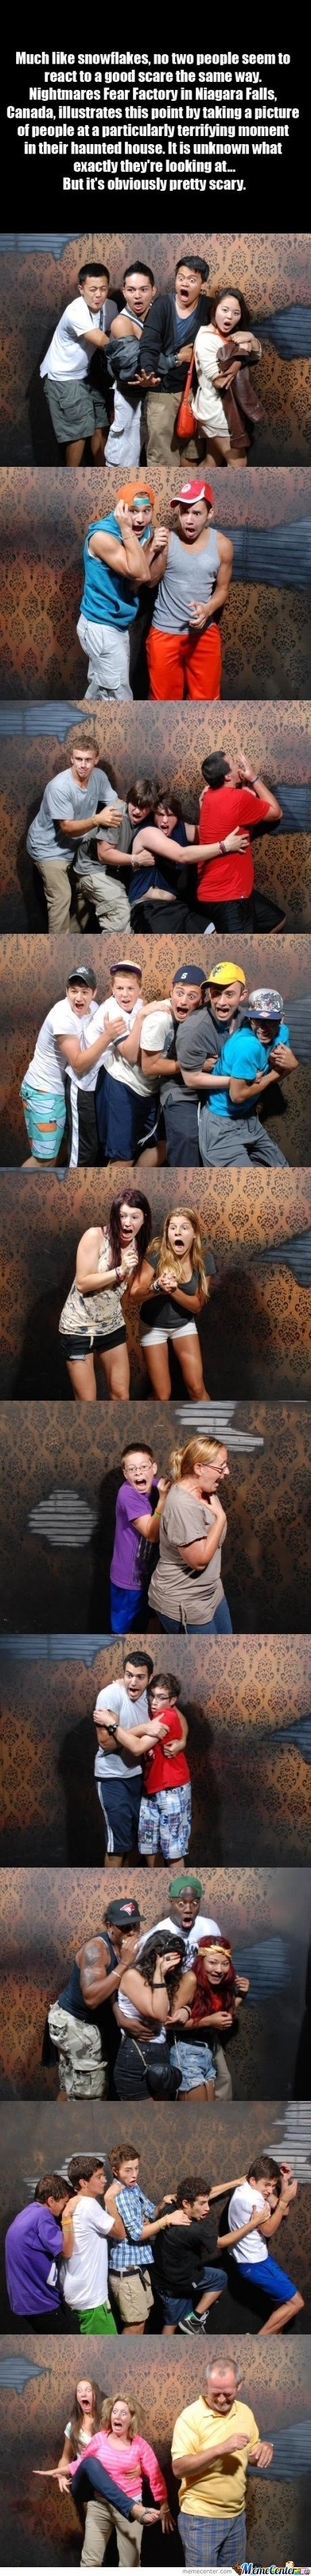 50 hilariously ridiculous haunted house reactions -  Fear Factory In Niagara Falls Canada Illustrates This Point By Taking A Picture Of People At A Particulary Terrifying Moment In Their Haunted House